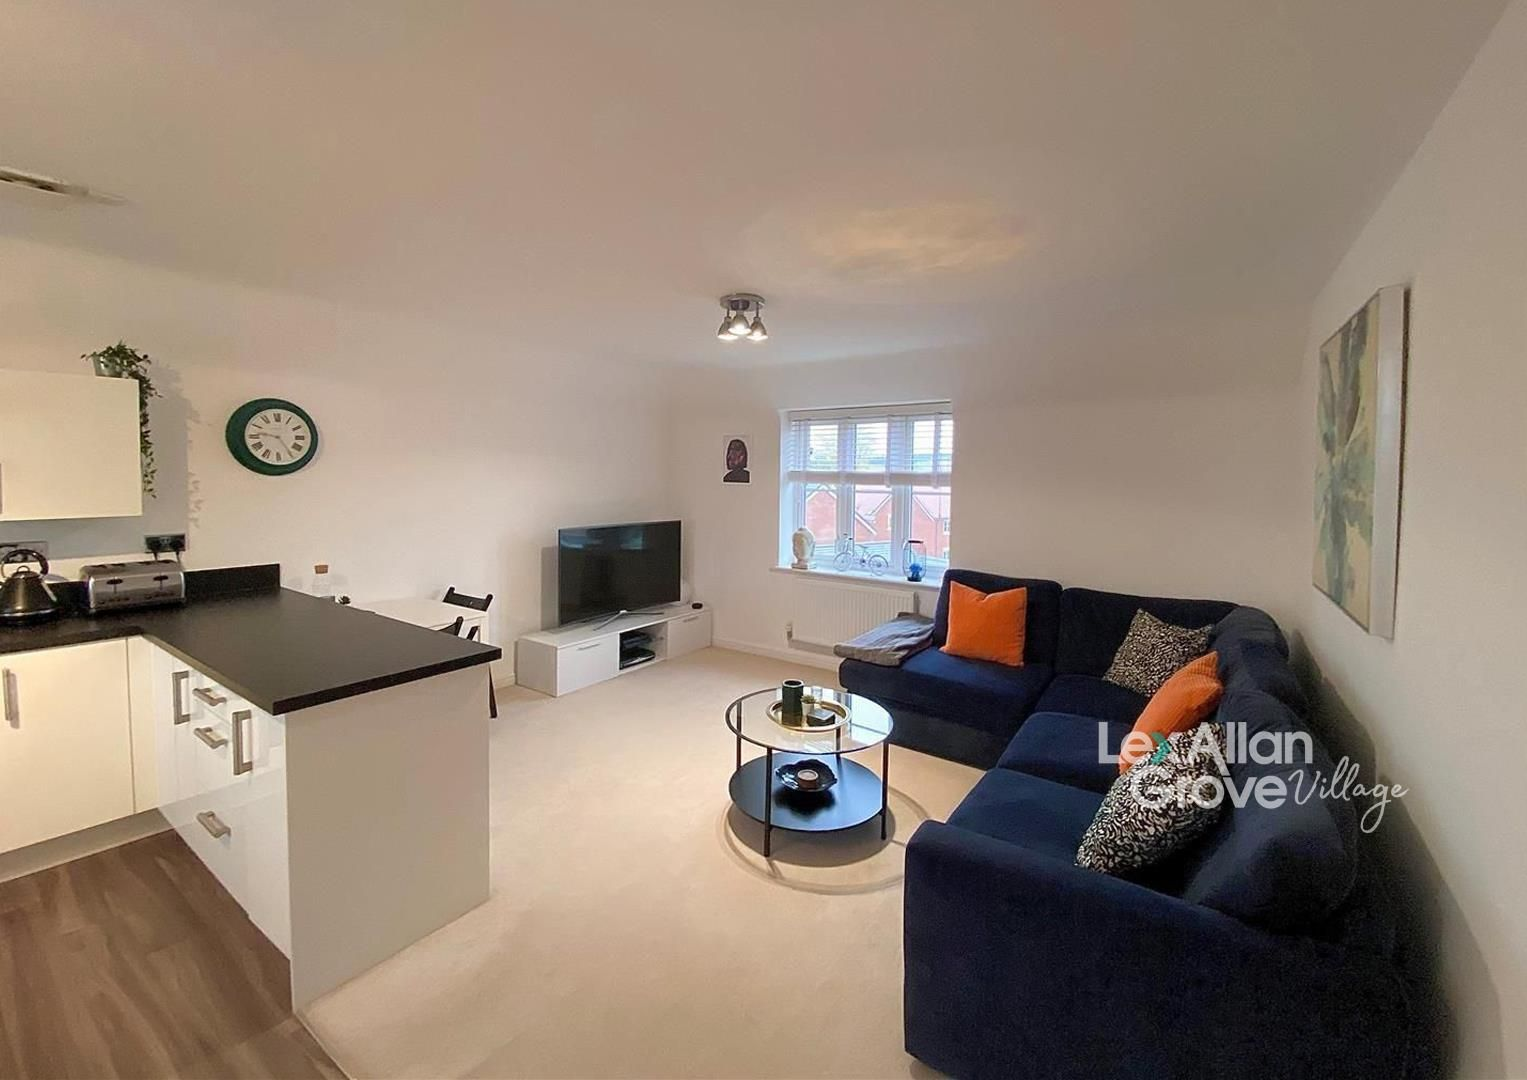 2 bed apartment for sale in Hagley, DY9